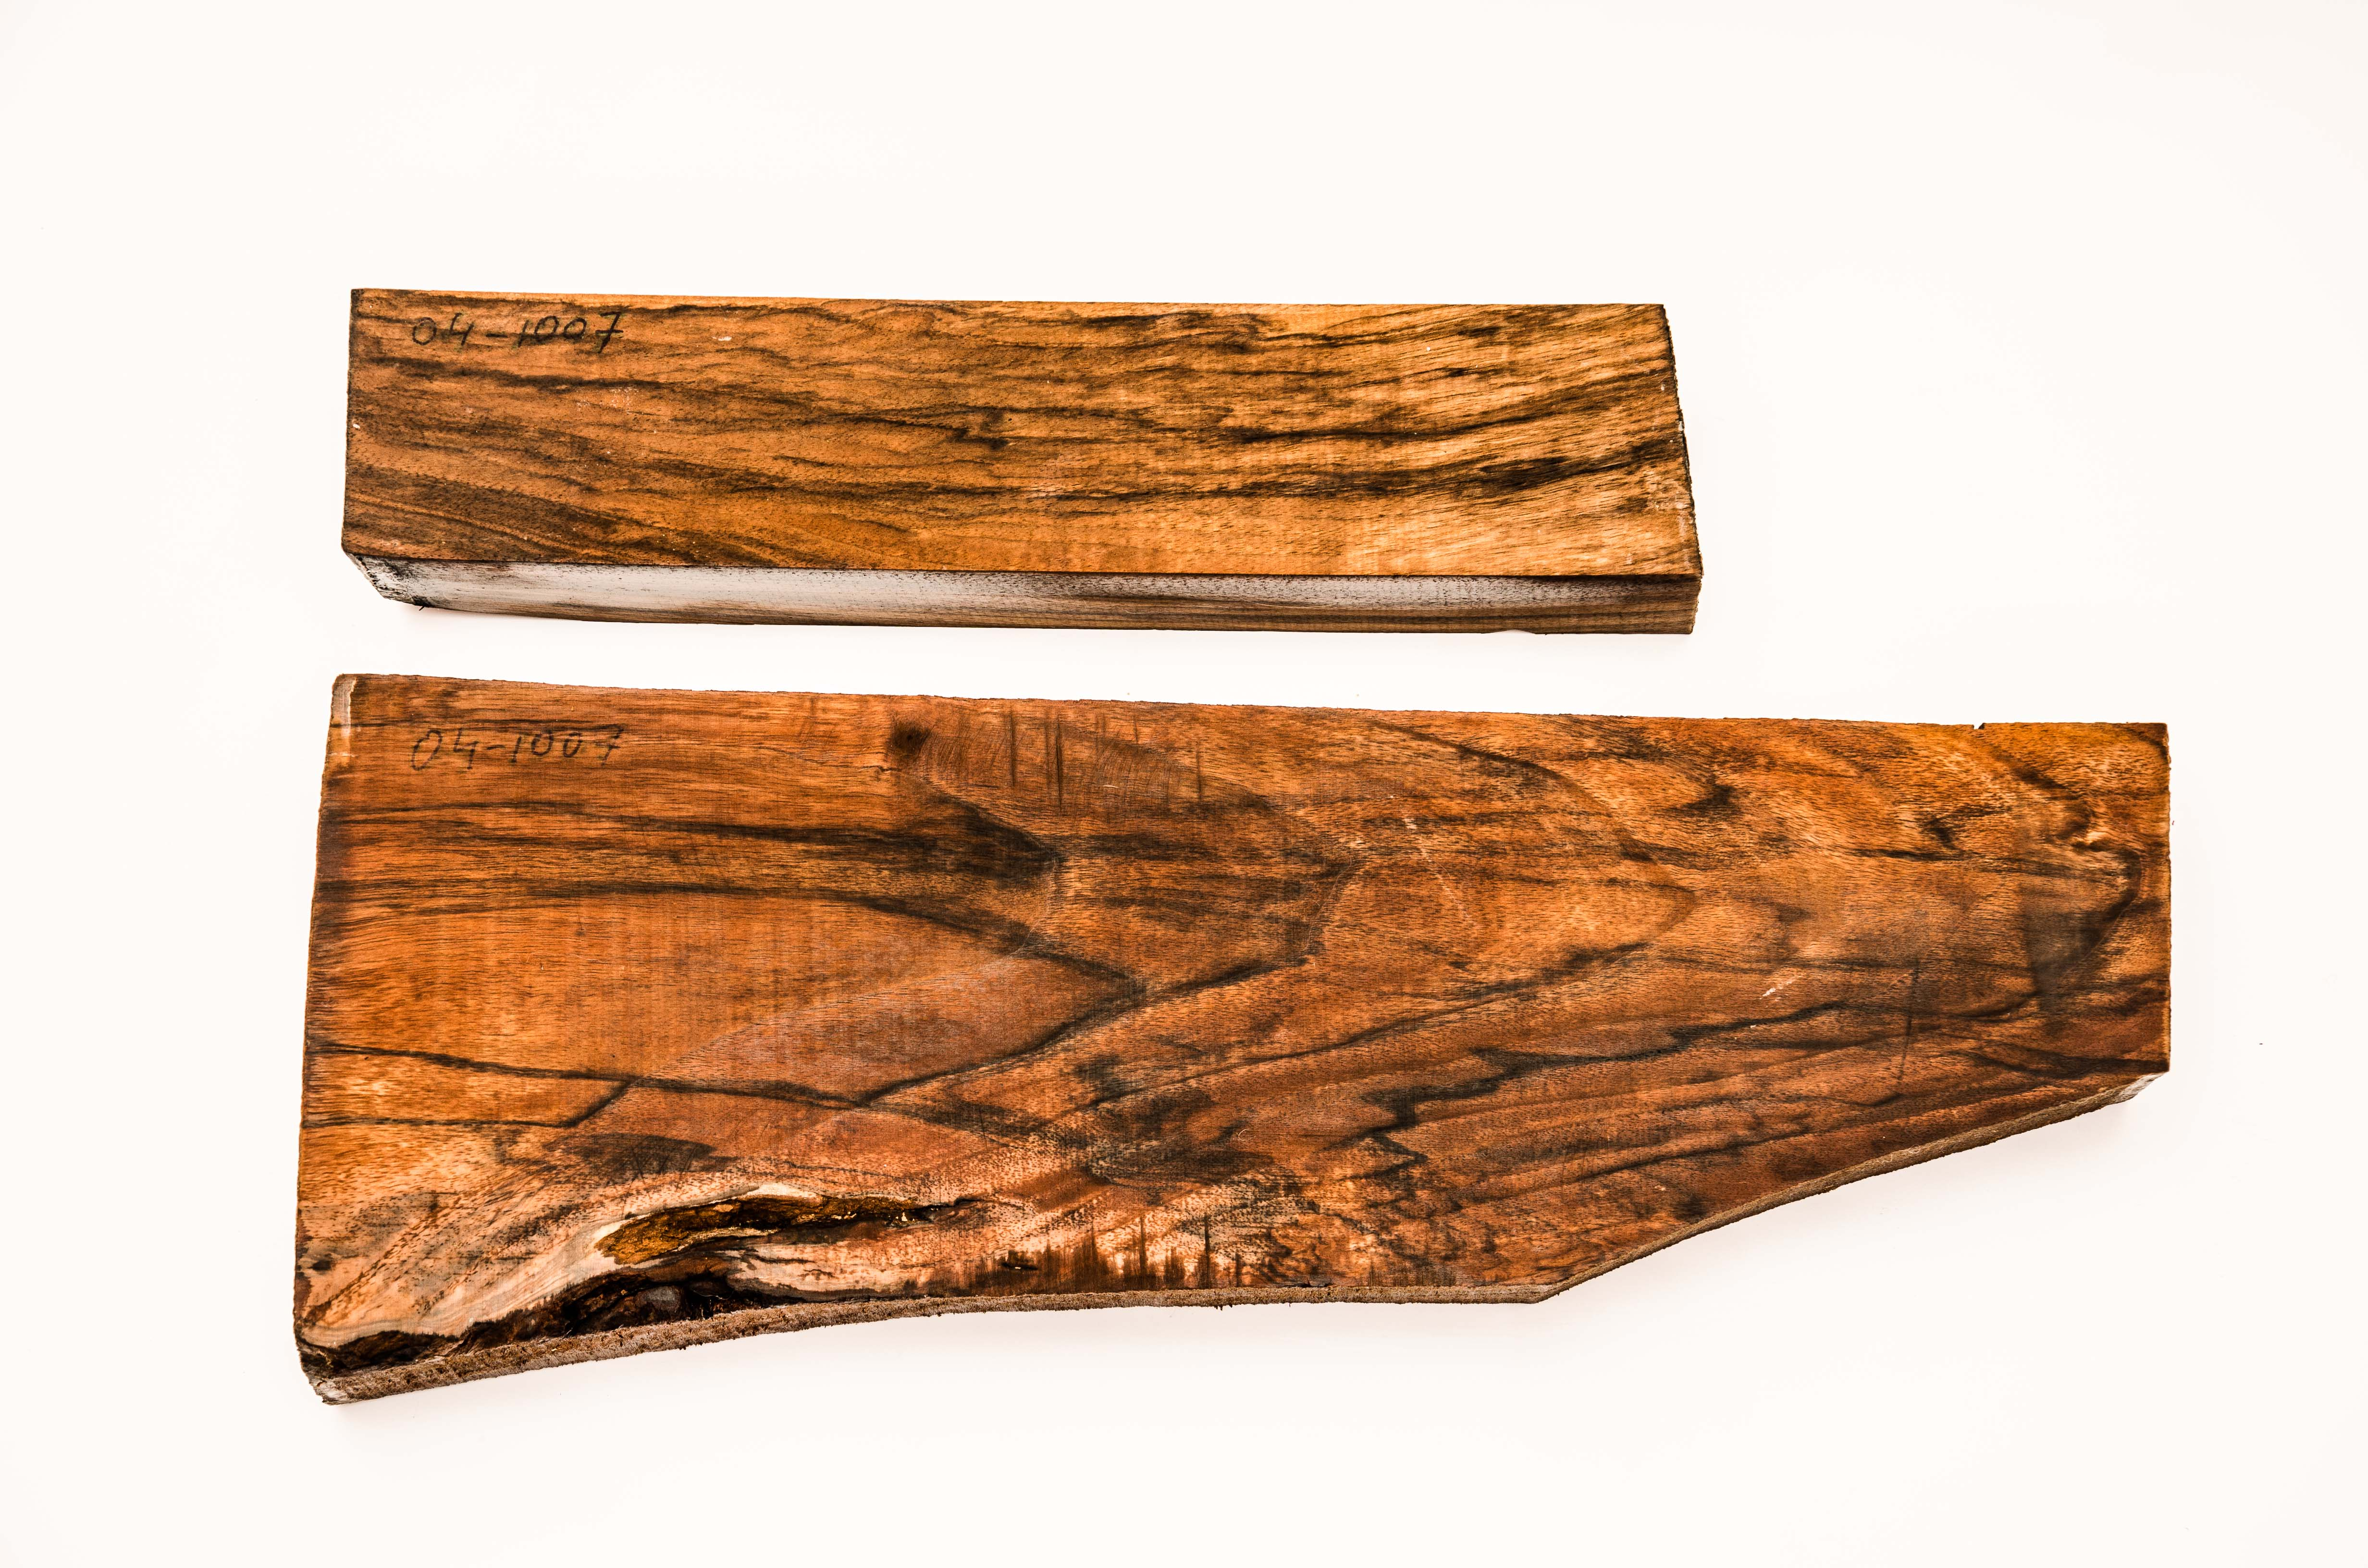 walnut_stock_blanks_for_guns_and_rifles-0439